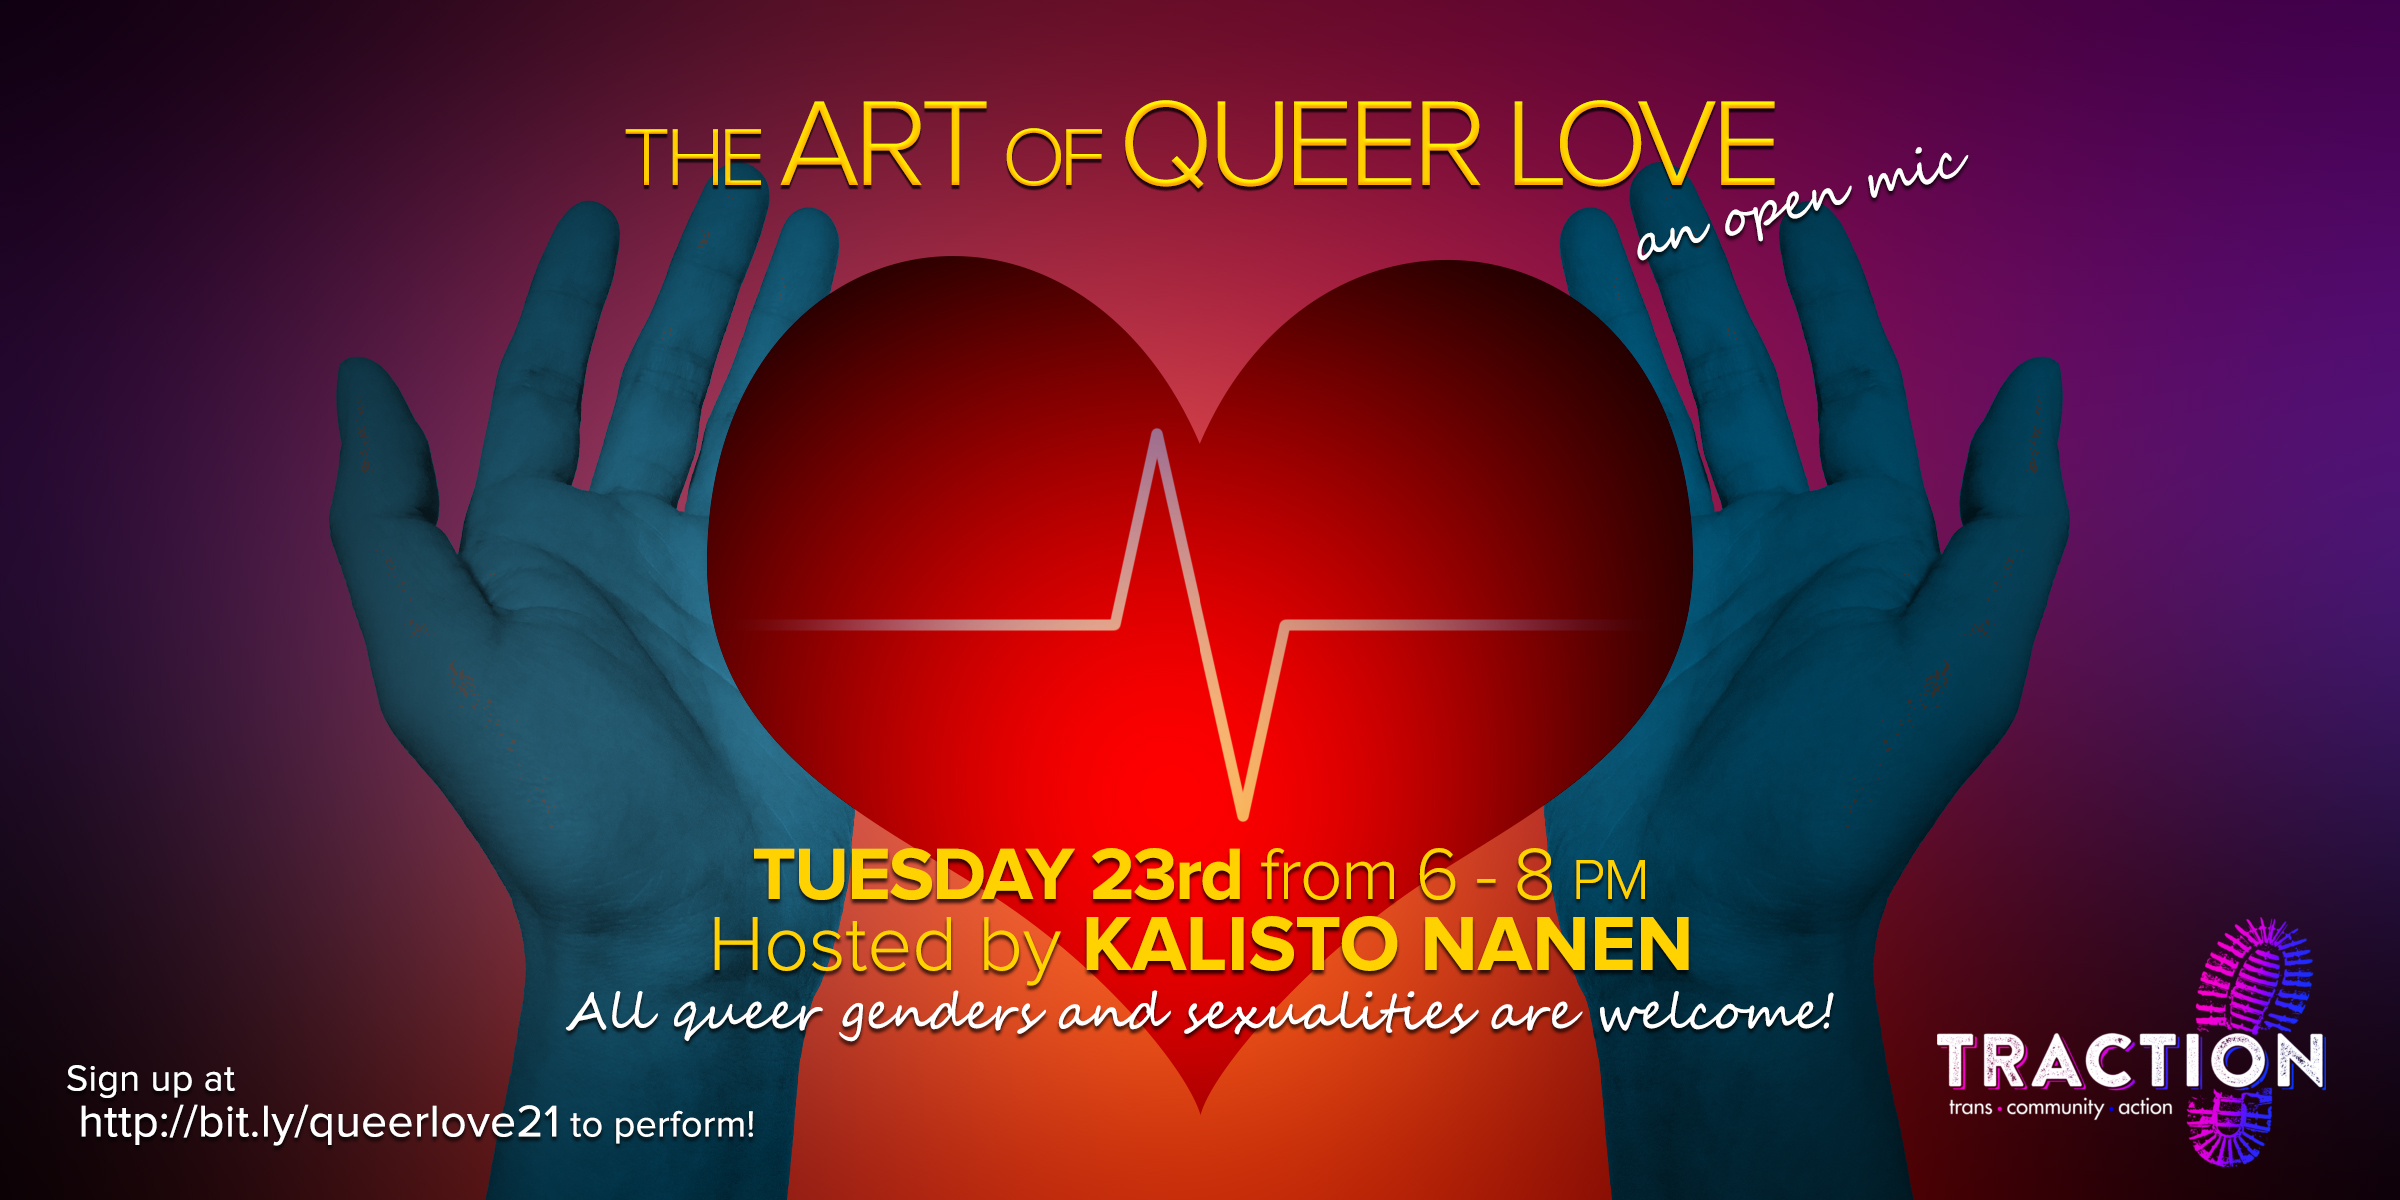 The Art of Queer Love: a trans & non-binary open mic